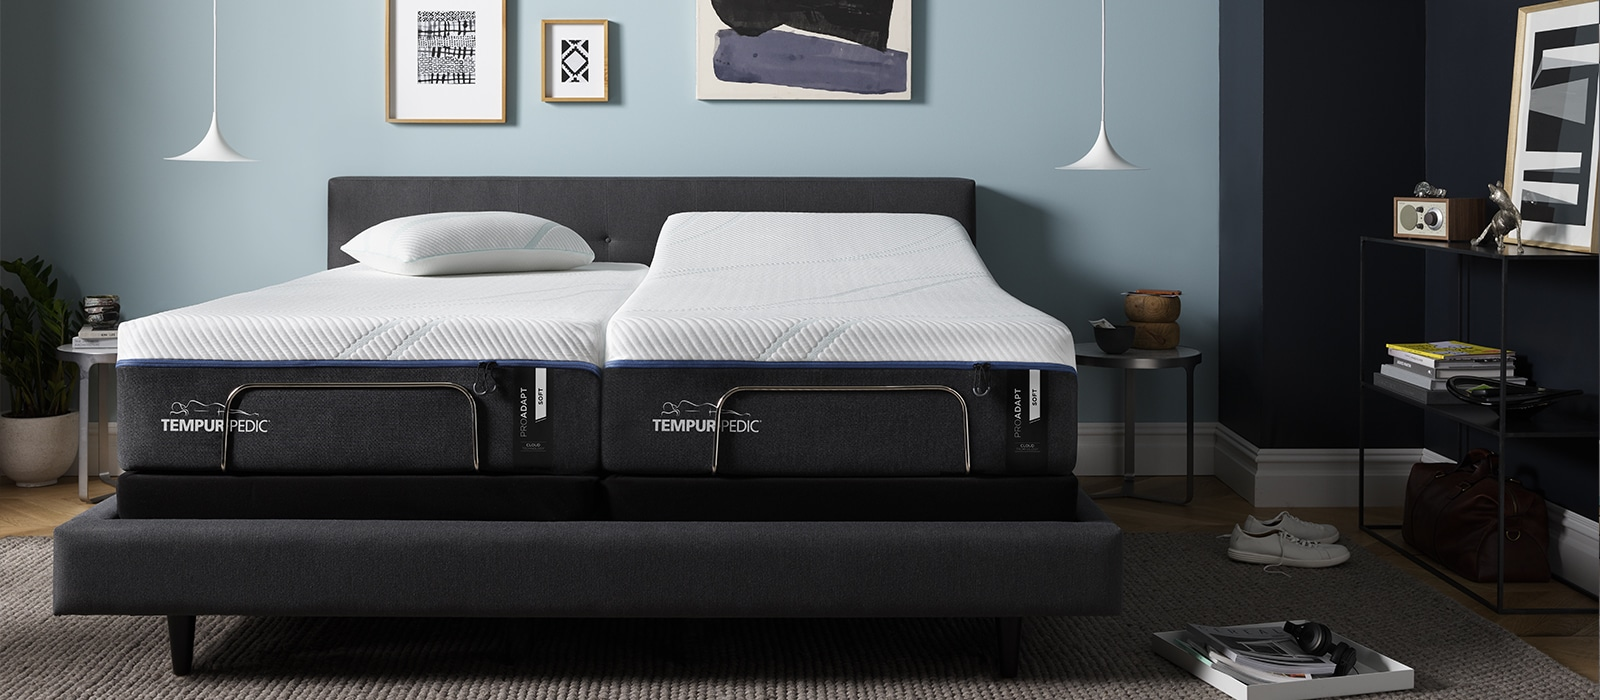 Tempur-Pedic vs. Purple: Which One to Choose?